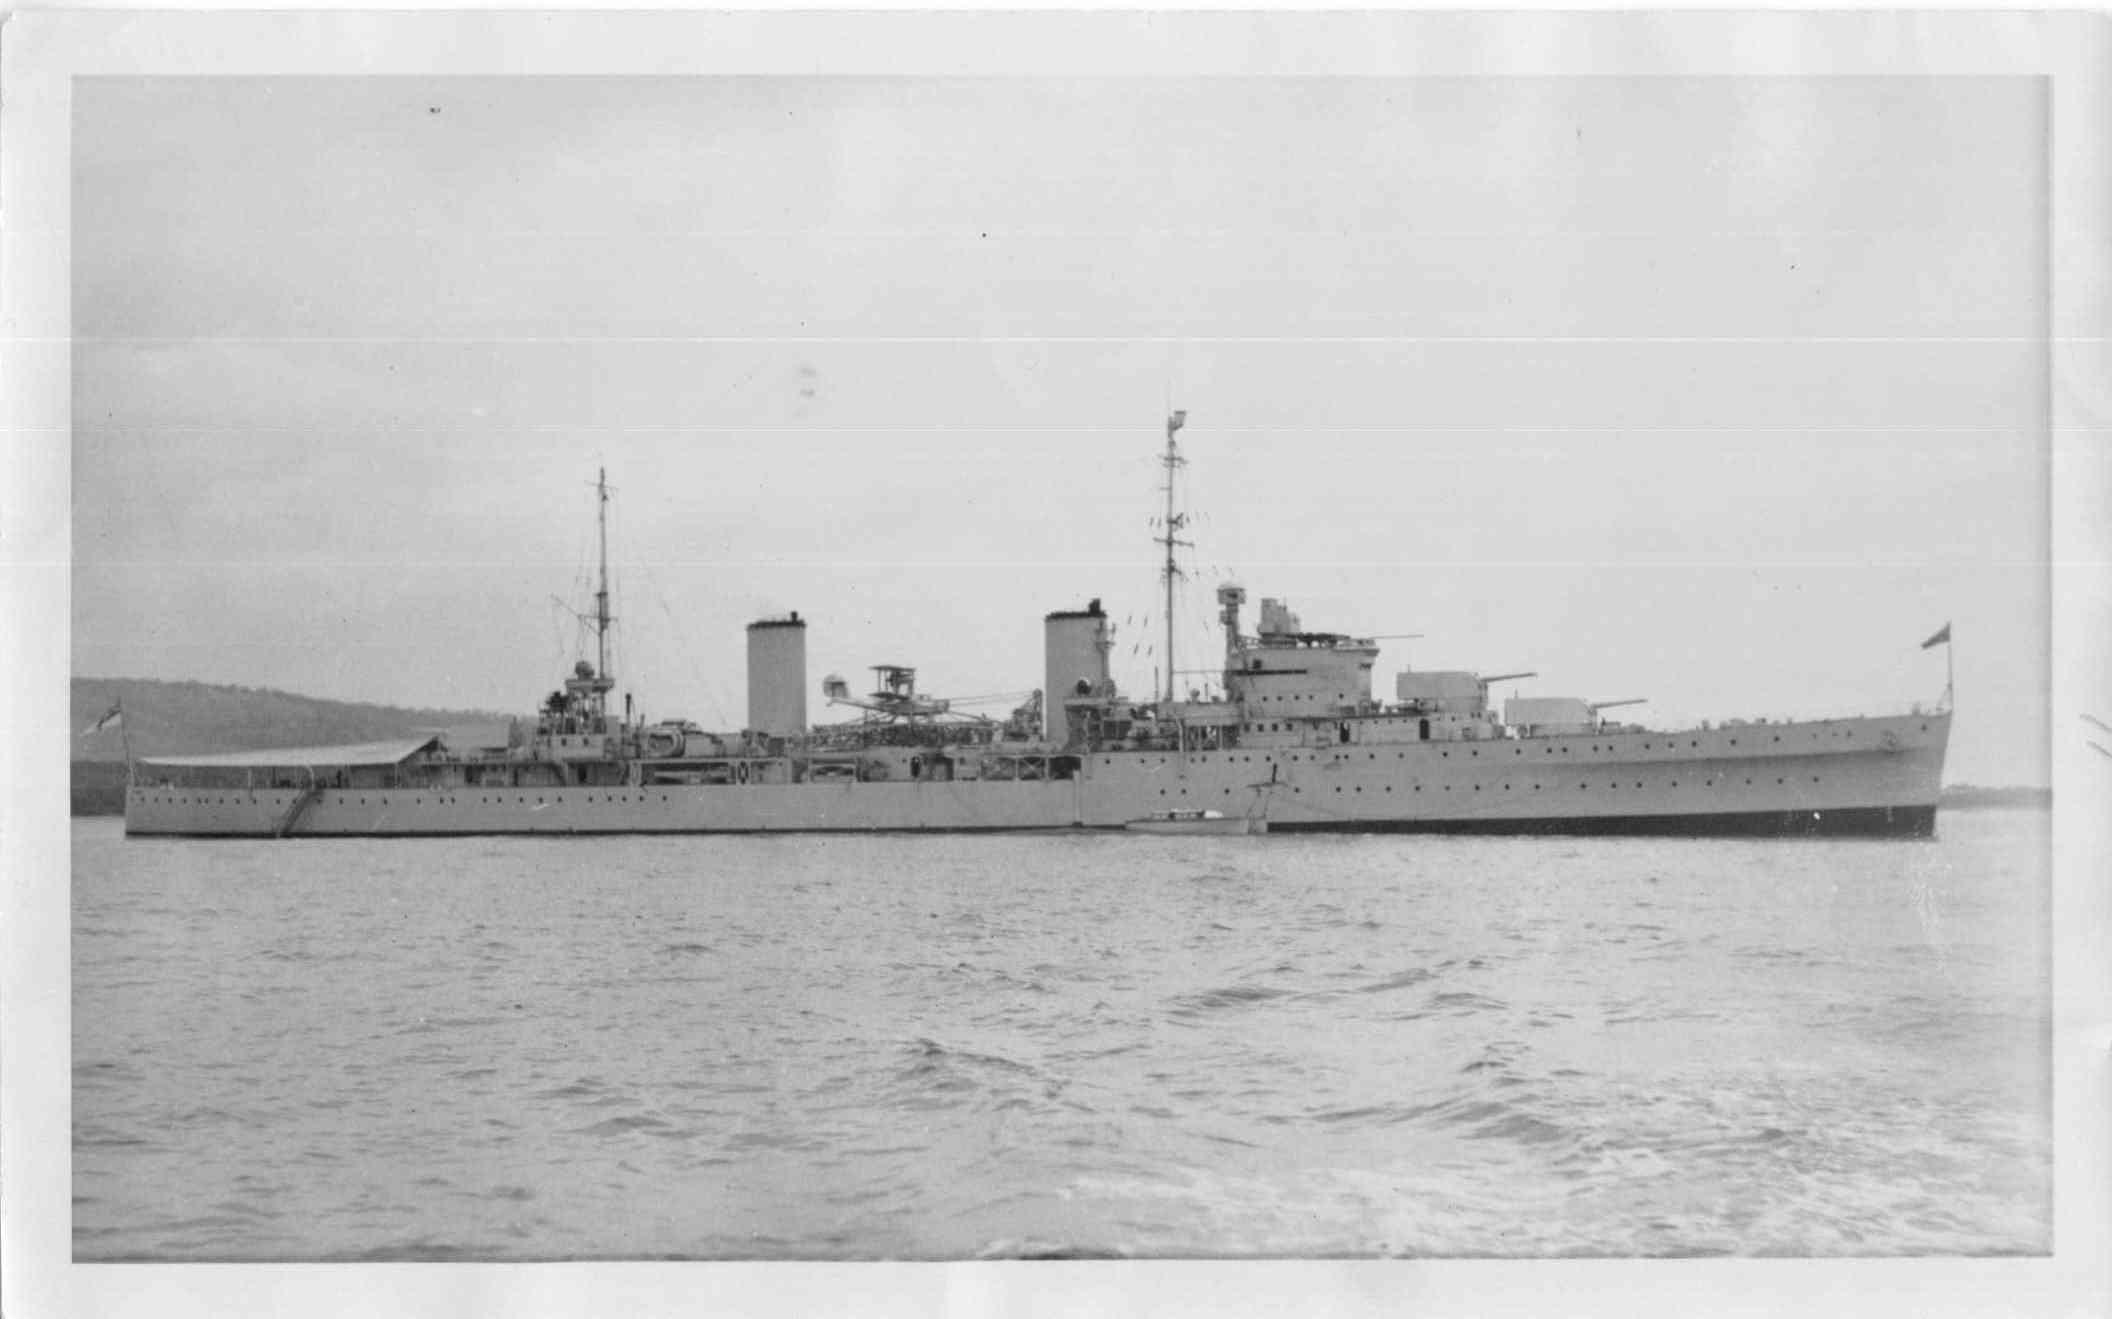 """H.M.A.S. """"Sydney"""", a Leander Class Light Cruiser, built by Swan Hunter  at Wallsend-on-Tyne, between 1933 and 1935.  Originally ordered for the Royal Nay, she was bought by the Australian government before launching.  During World war 2 while serving in t"""